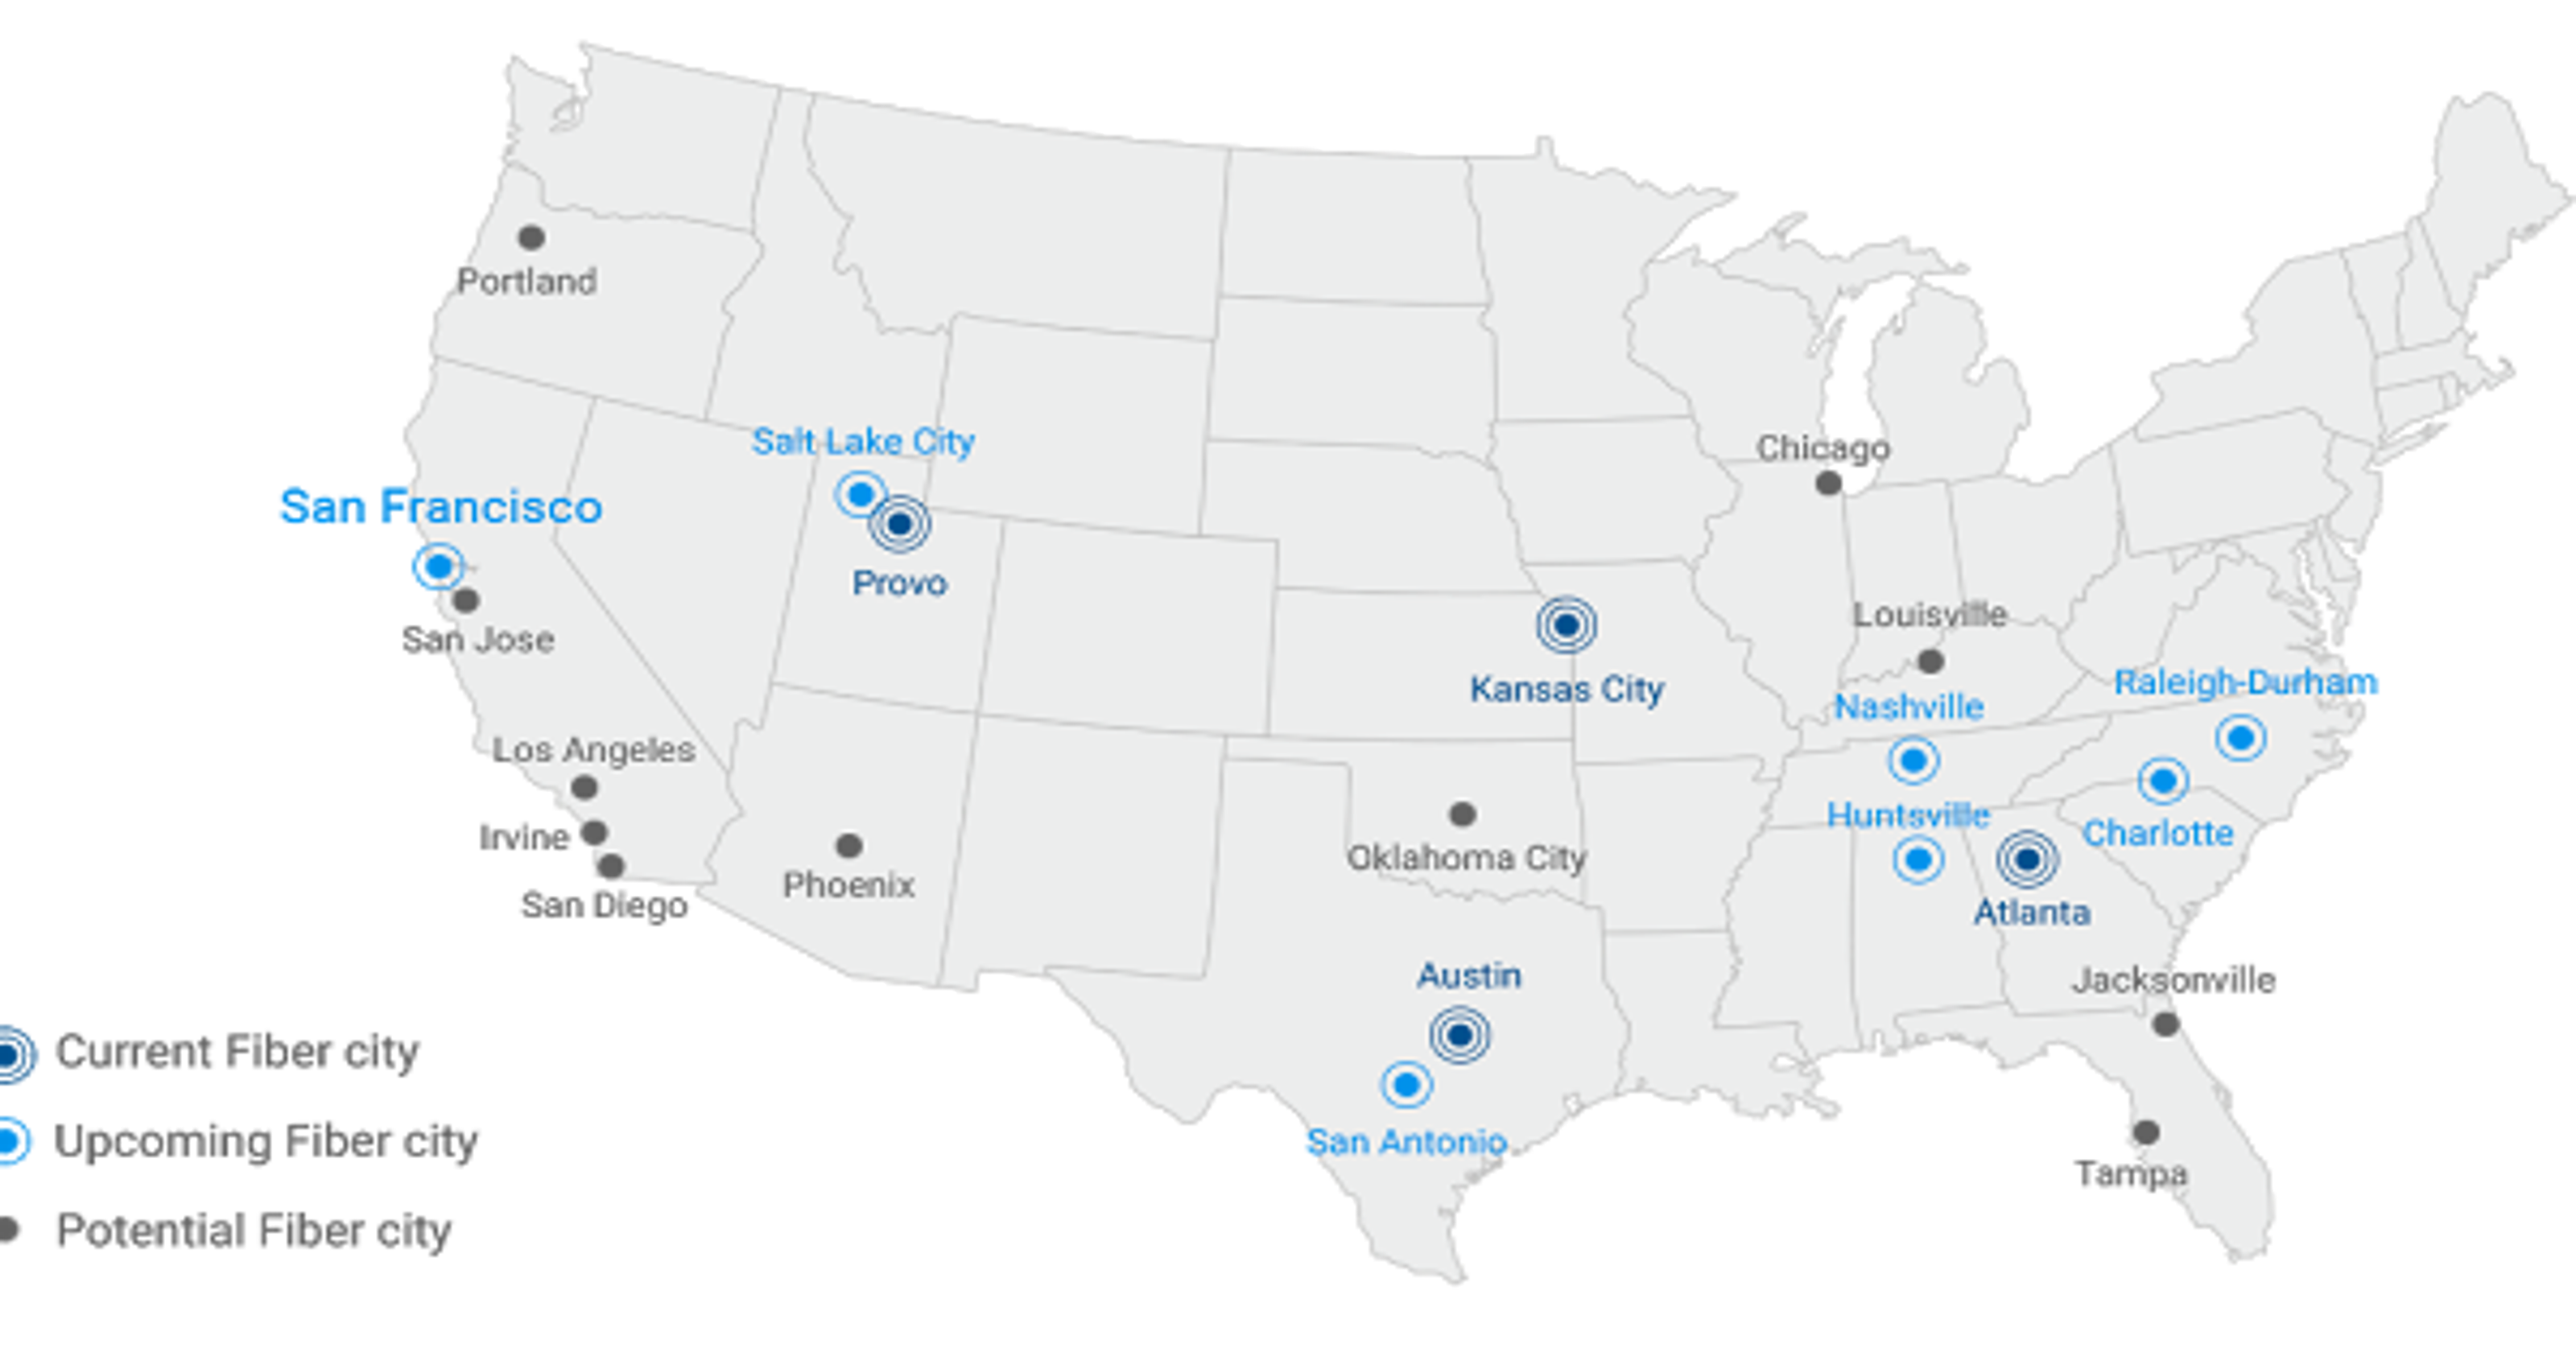 Google Fiber coming to (parts of) San Francisco on google fiber van, google fiber austin, google high speed internet, kansas cities map, google map branson mo, google maps trinidad street map, google fiber bunny, google fiber hut, google america united states, google earth views from satellite, google fiber provo, google fiber north carolina, google map boston ma, google maps neighborhoods, google fiber neighborhoods, google map of kansas, google map with mileage, google fiber sign up, google fiber in my area, google fiber network,